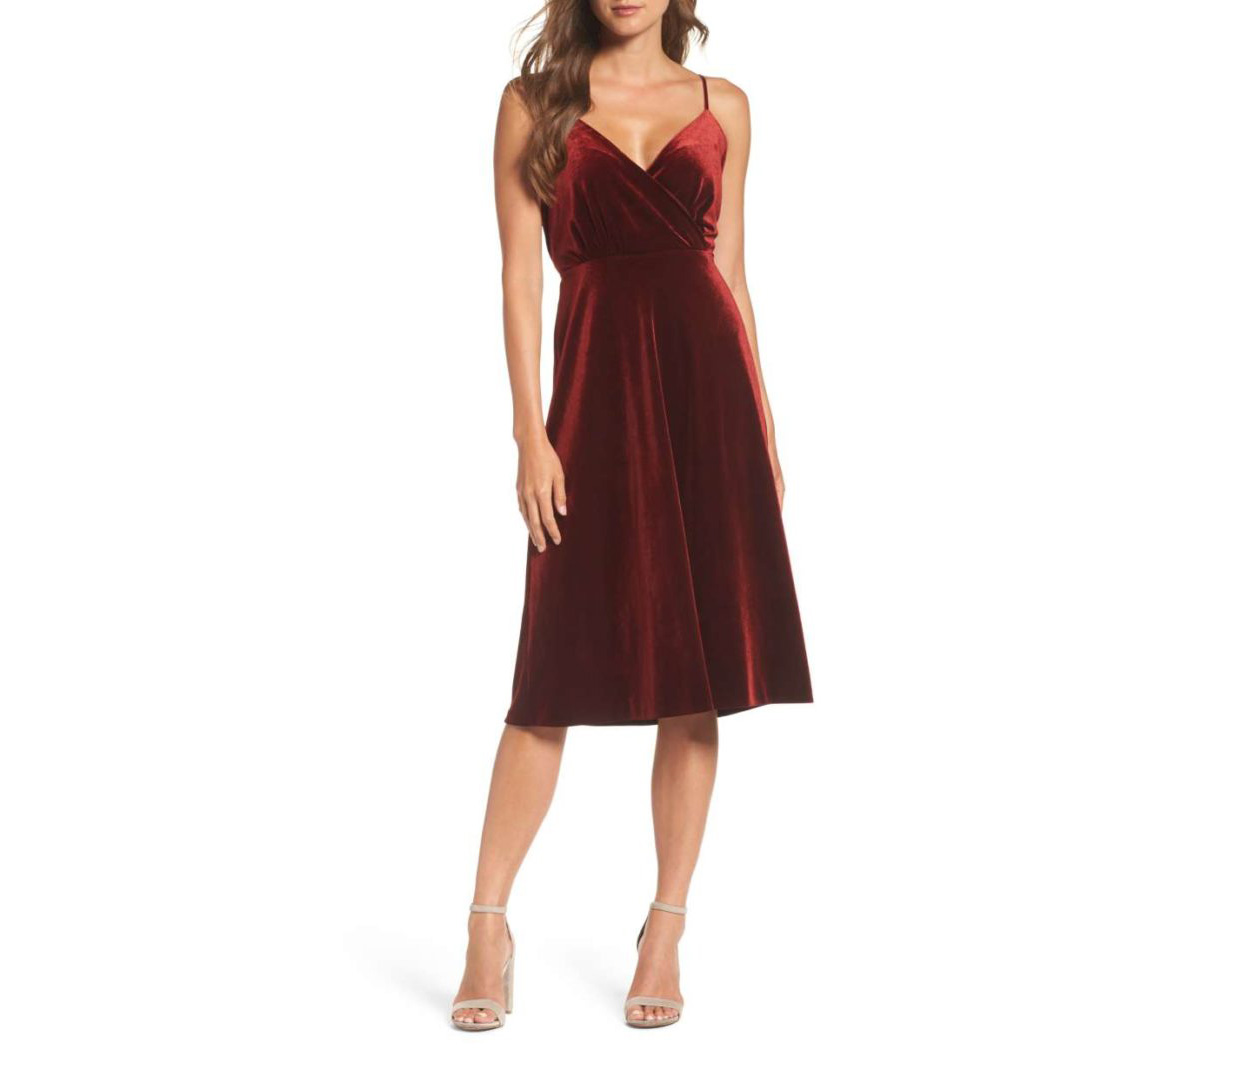 102482edec3 Which Dress Is Best for a Date